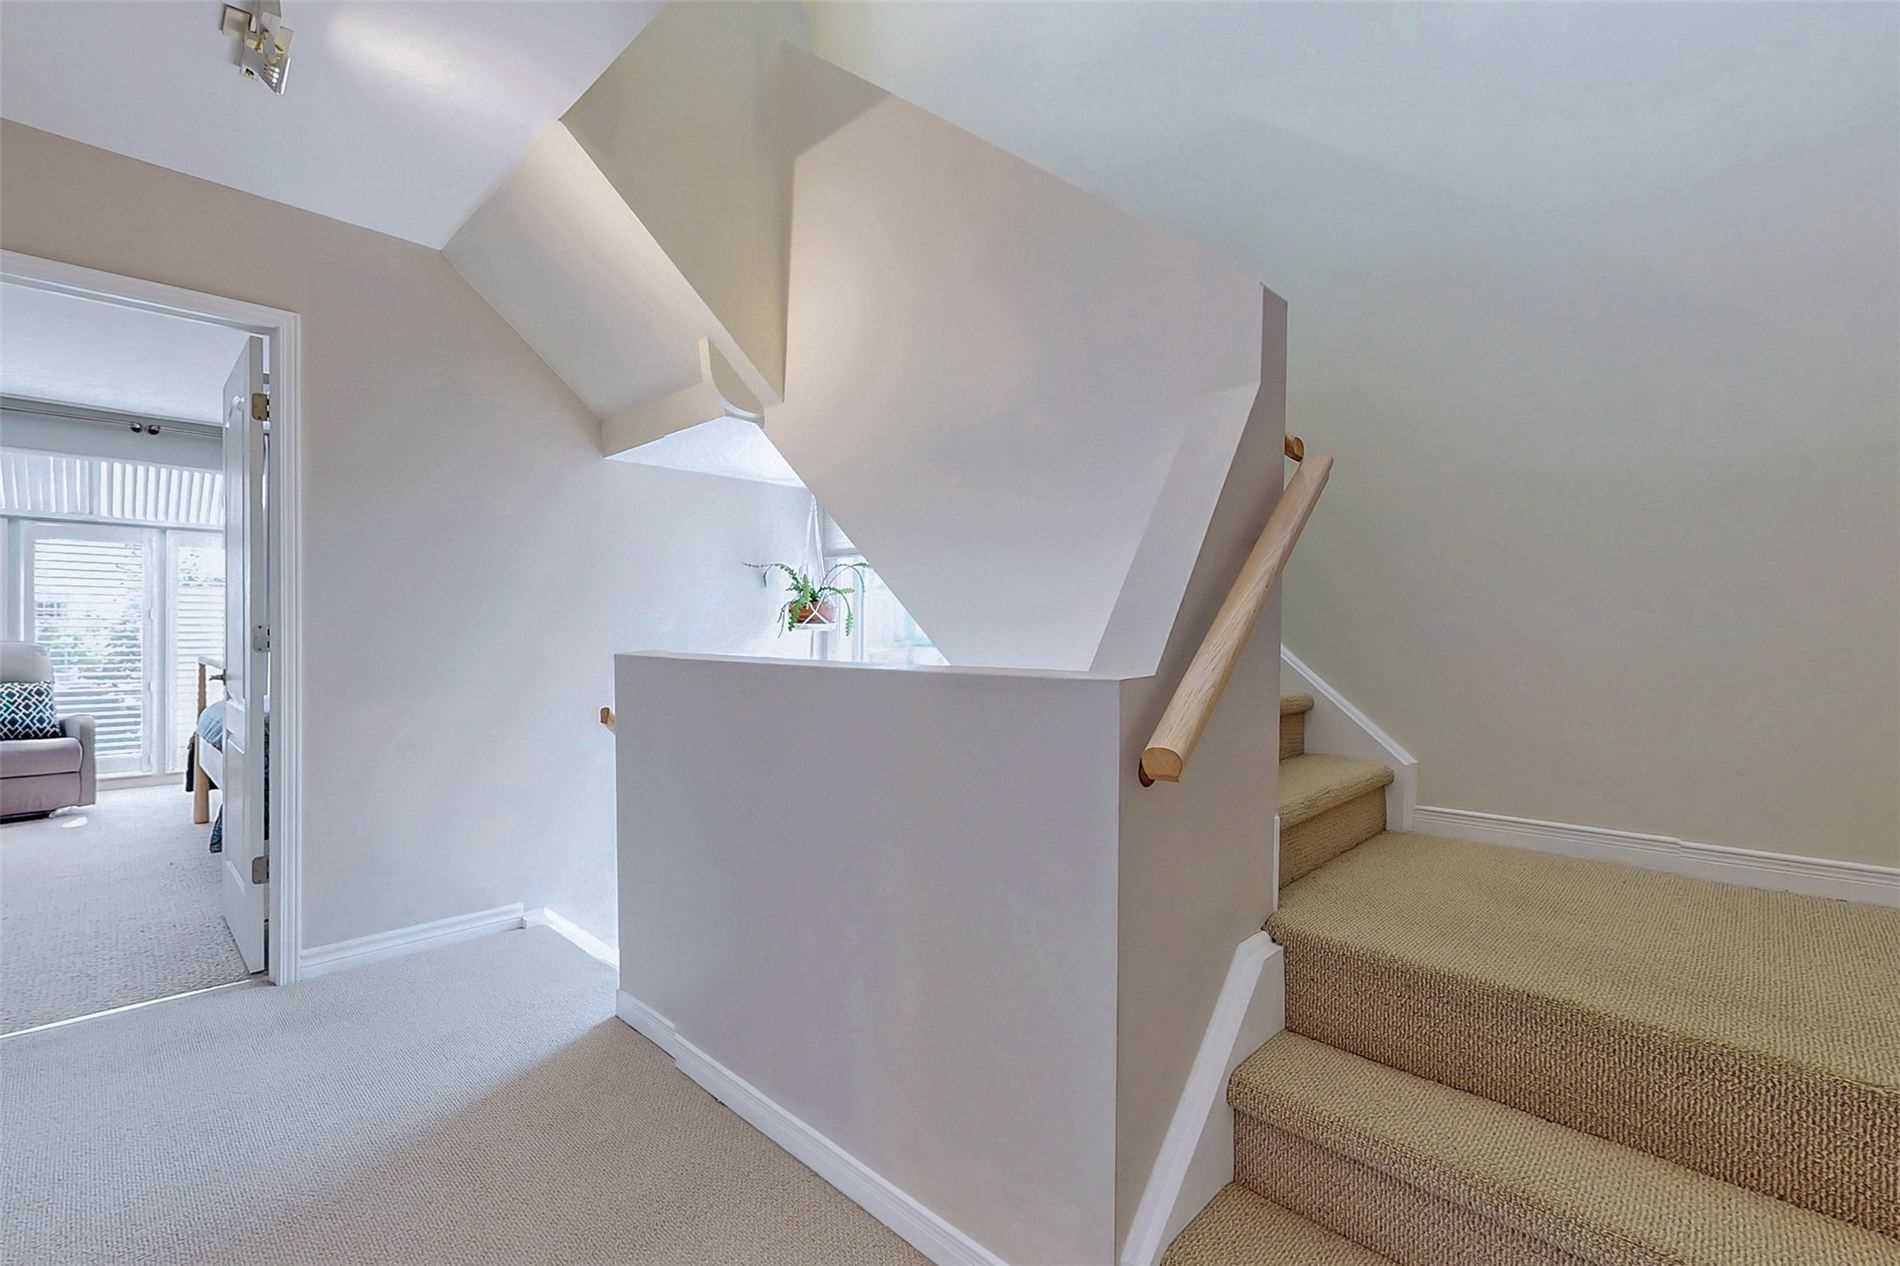 Image 30 of 40 showing inside of 3 Bedroom Condo Townhouse 3-Storey for Sale at 14 Cumberland Lane Unit# 7, Ajax L1S7K4